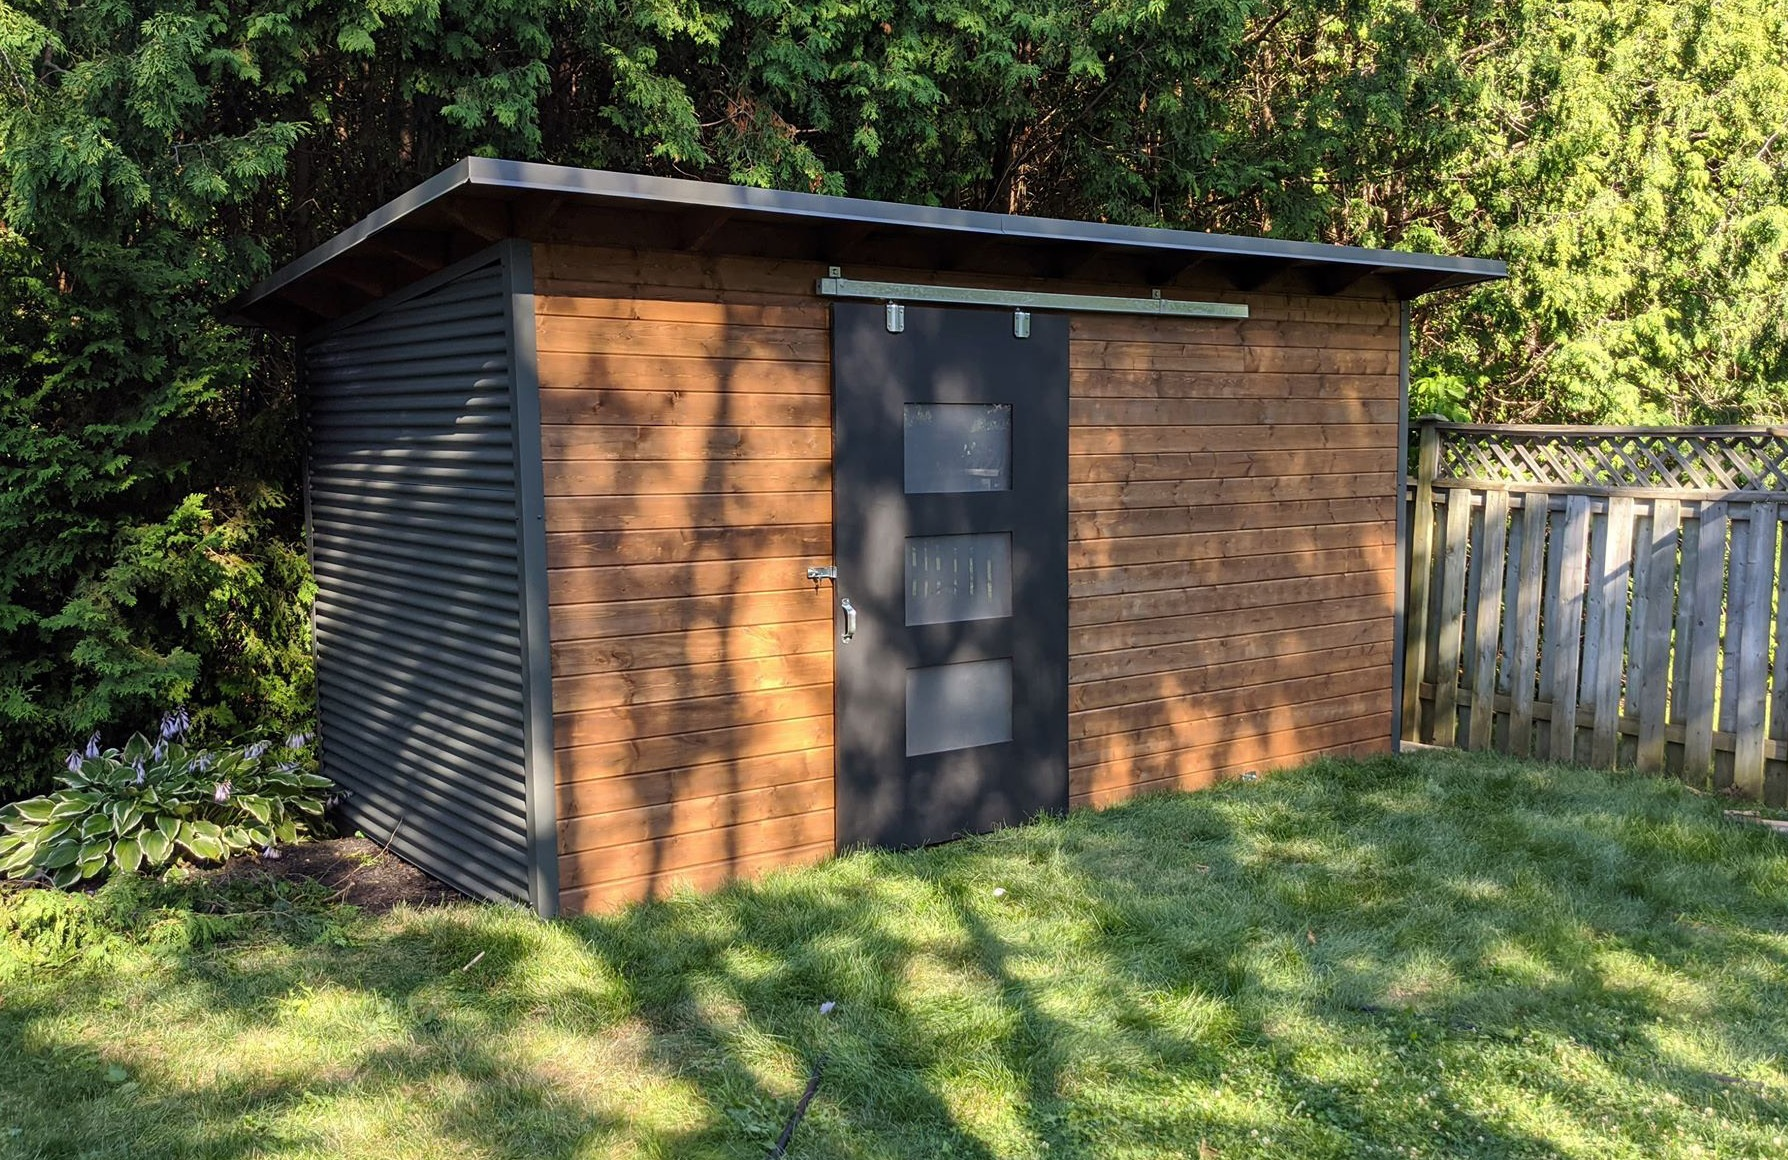 16' x 8' Essential Shed with Muskoka Brown Stain and Charcoal Steel